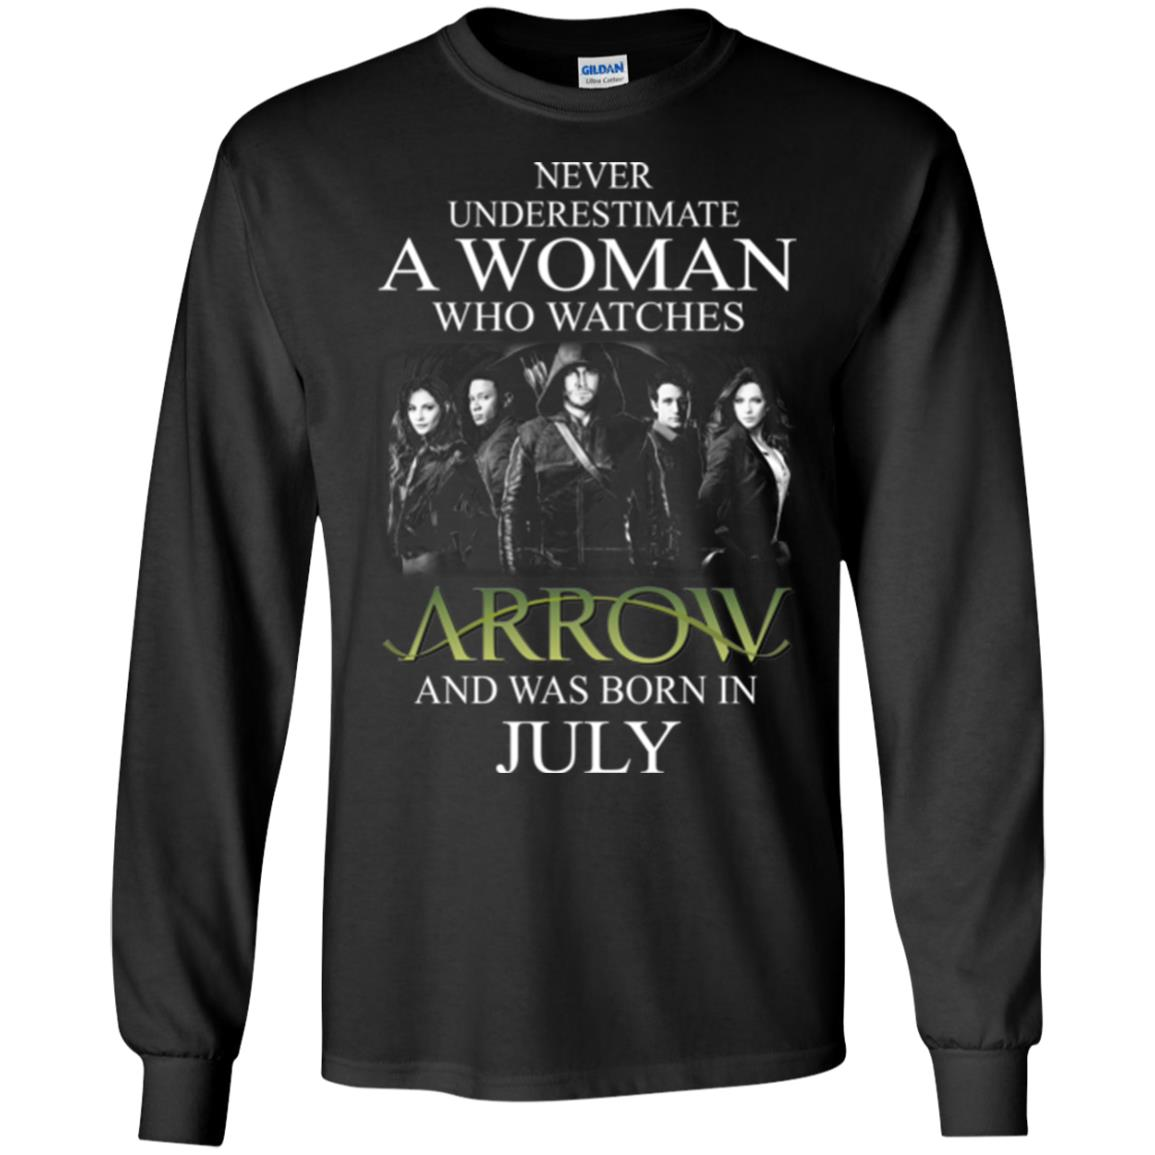 Never Underestimate A woman who watches Arrow and was born in July shirt - image 1520